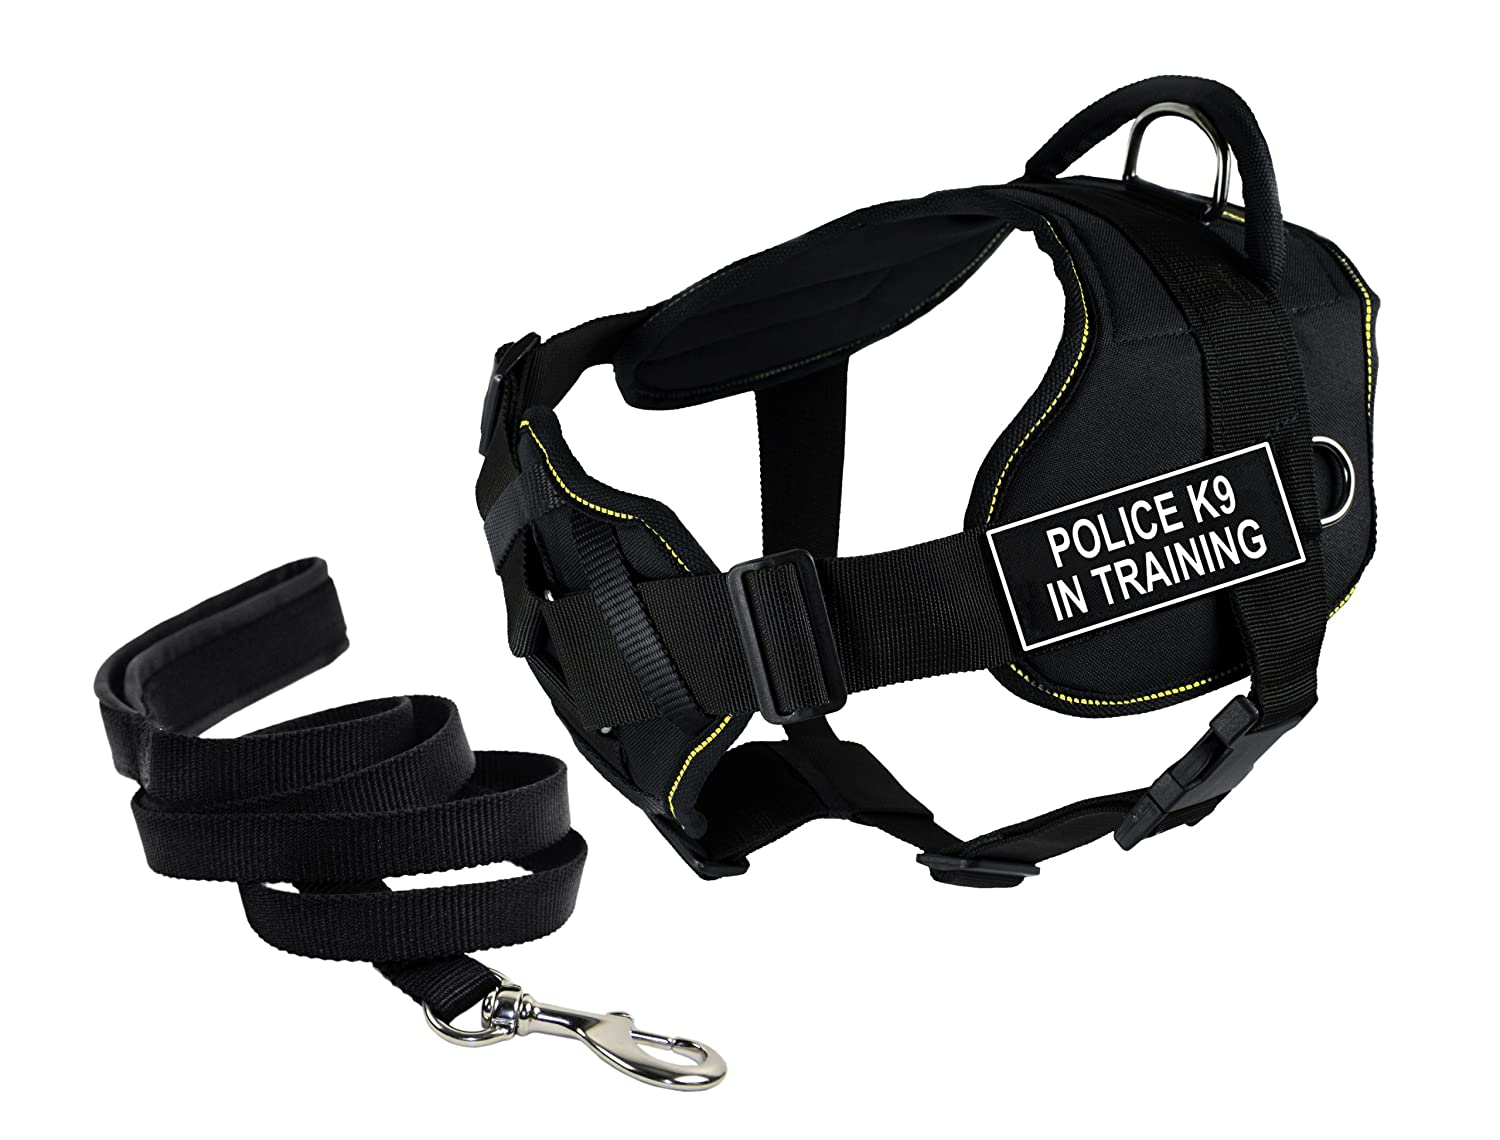 Dean & Tyler's DT Fun Chest Support POLICE K9 IN TRAINING Harness, Large, with 6 ft Padded Puppy Leash.